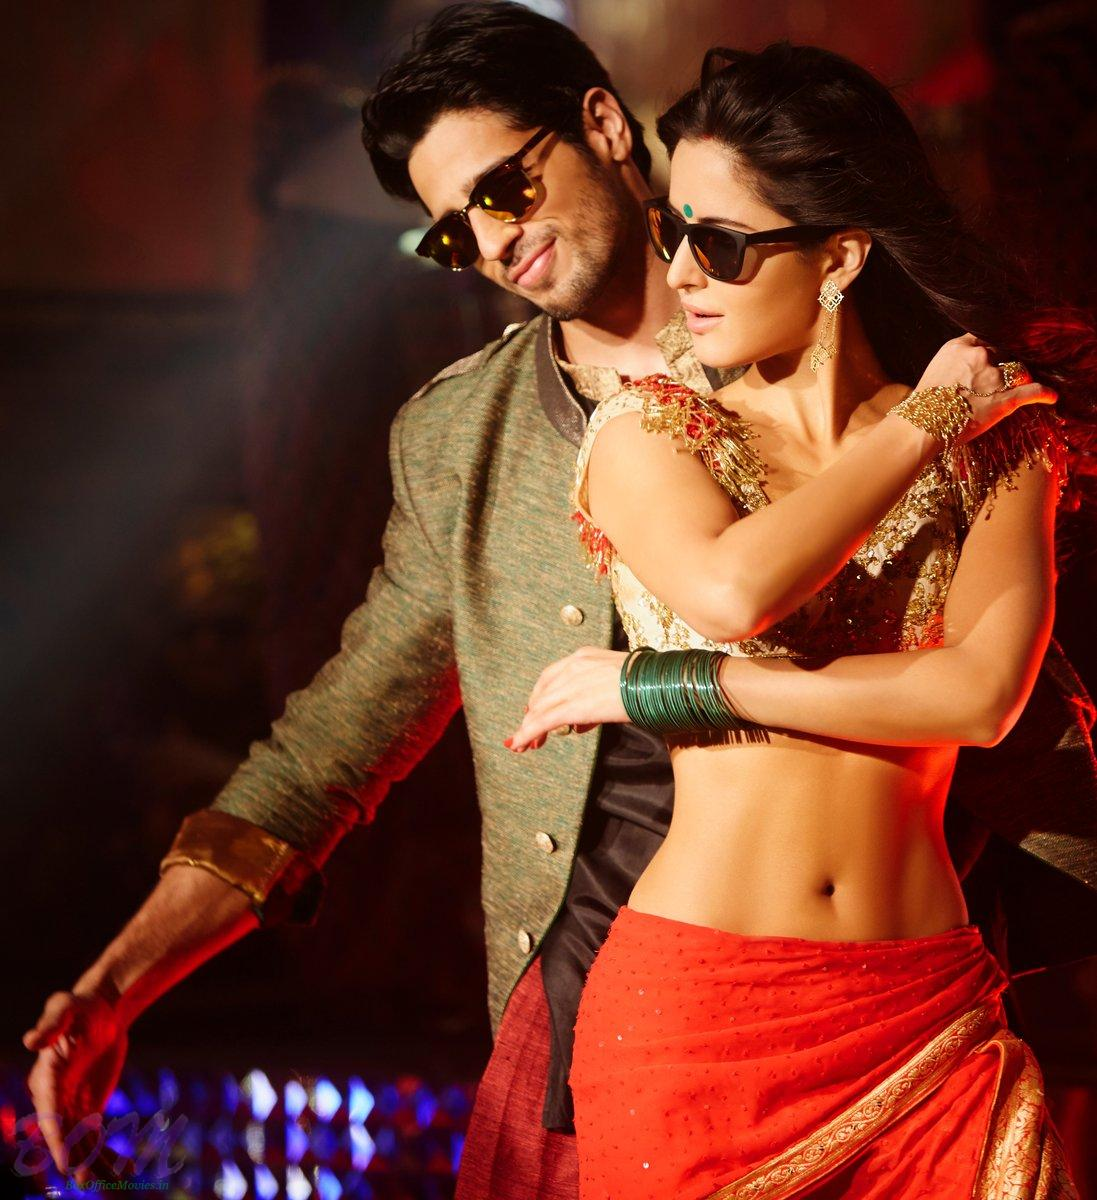 First Look of Siddharth Malhotra and Katrina Kaif in Baar Baar Dekho